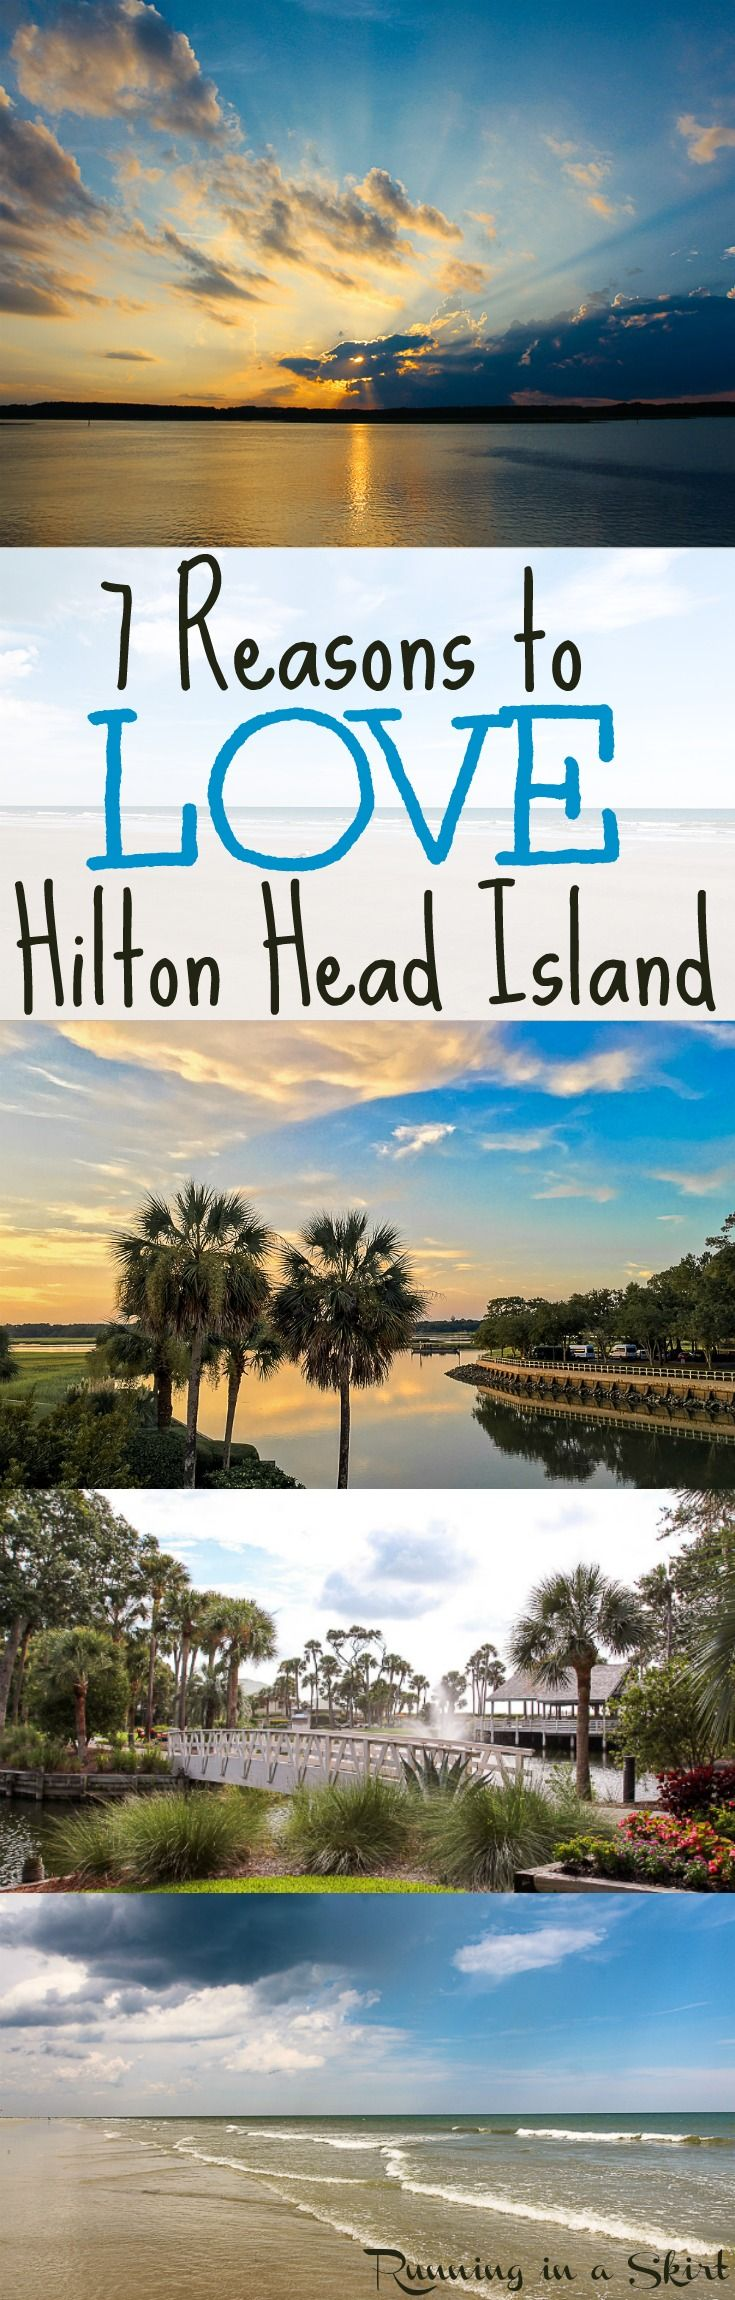 Fun Things To Do at Hilton Head Island including gorgeous beaches, hotels, resorts (Sonesta Resort) and food / restaurnats (lots of seafood!)  Stunning photography of the south's favorite island!| Running in a Skirt